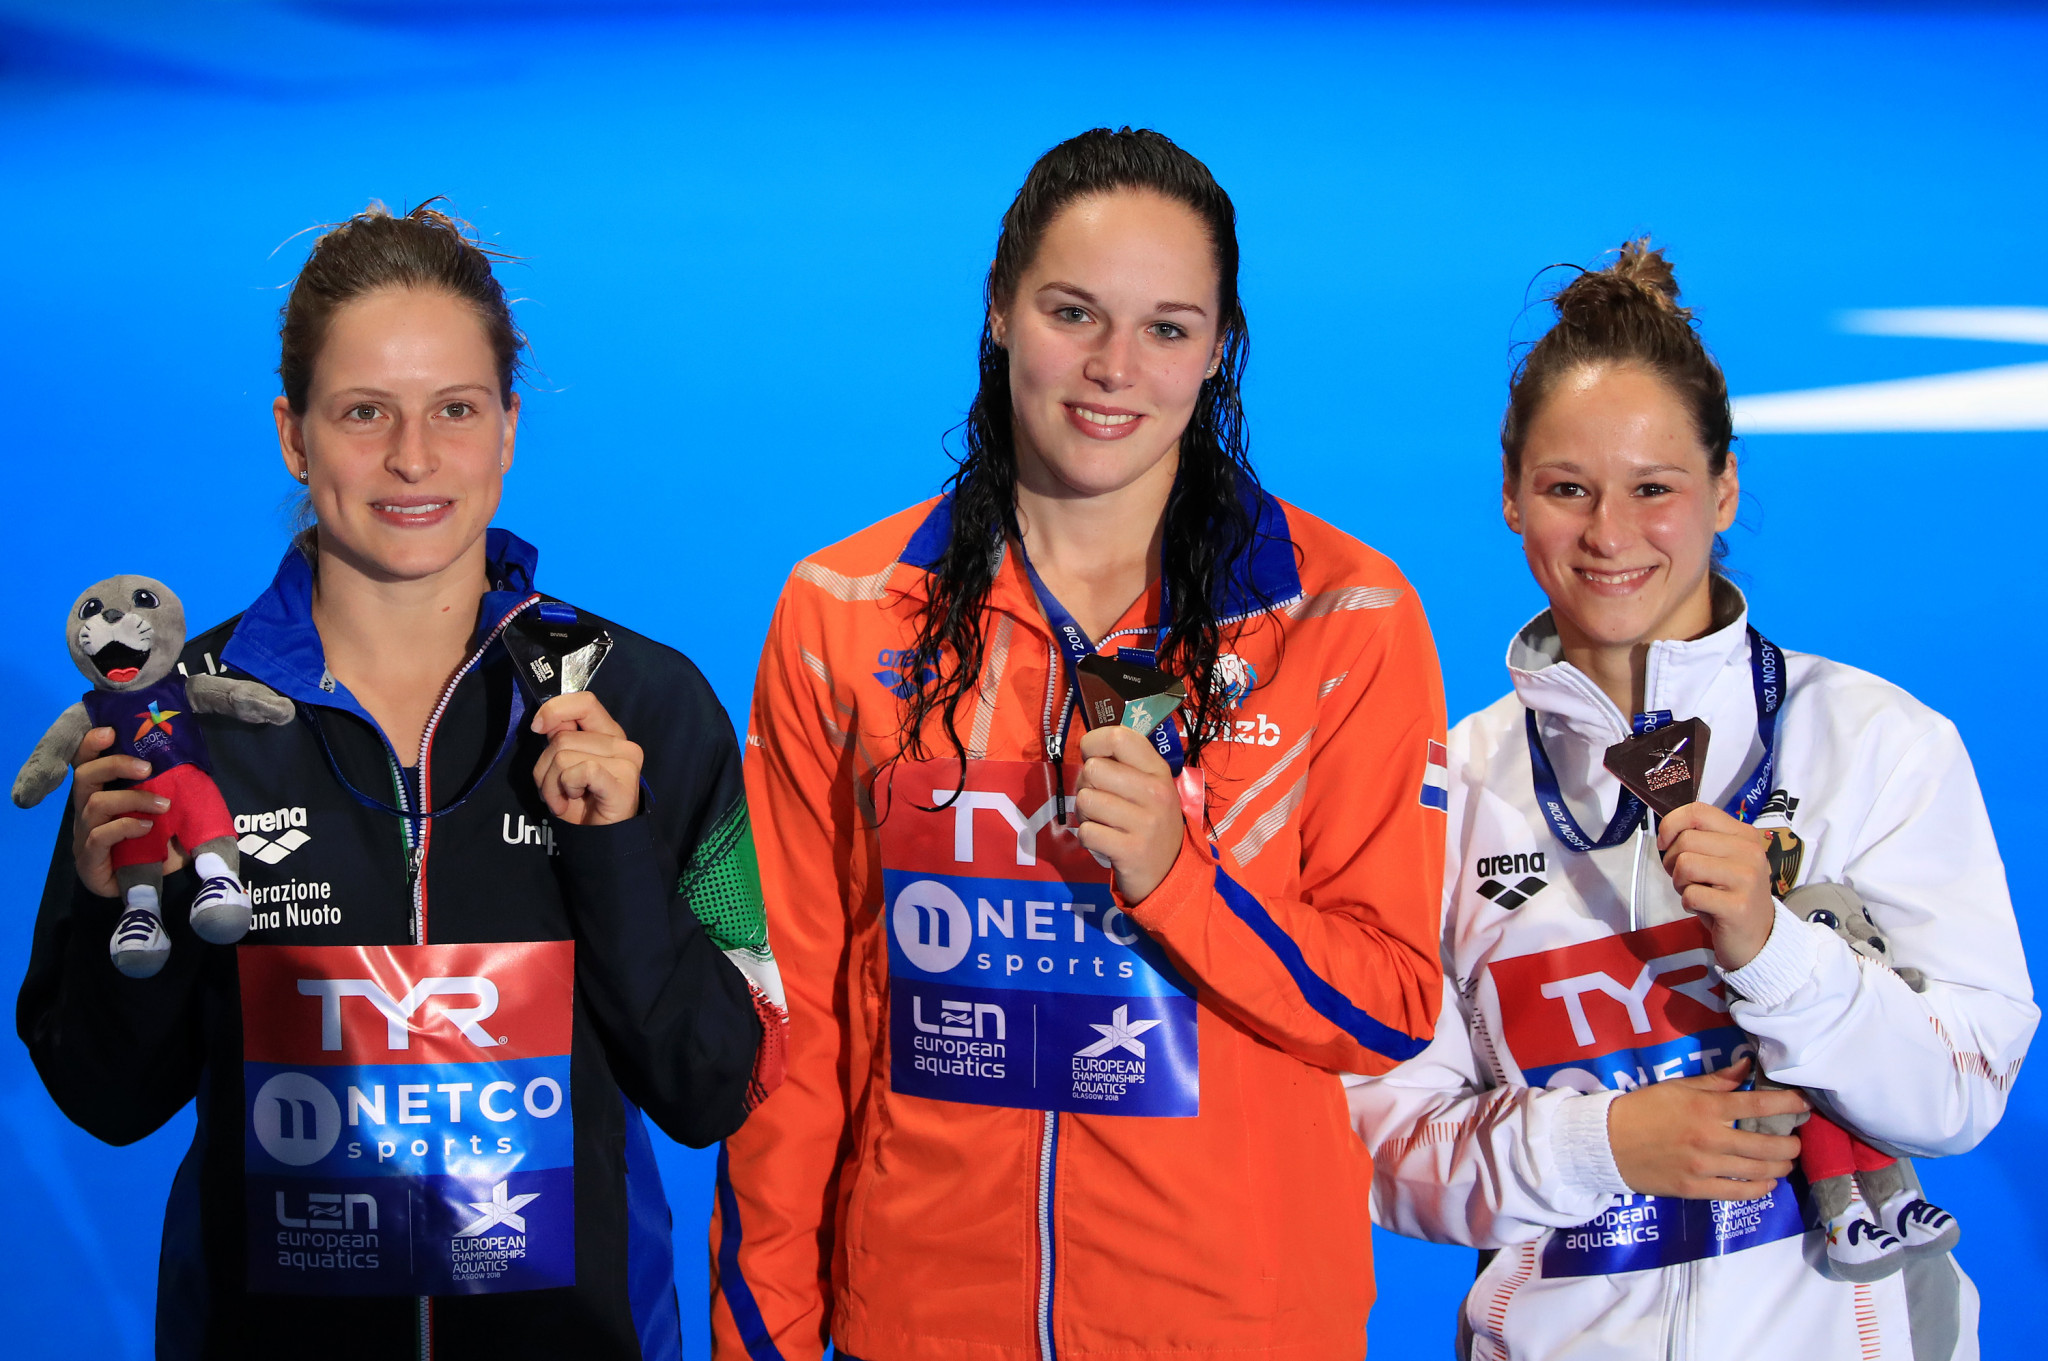 Gold for Netherlands in women's 10m platform as defending champion Toulson comes fifth at European Championships